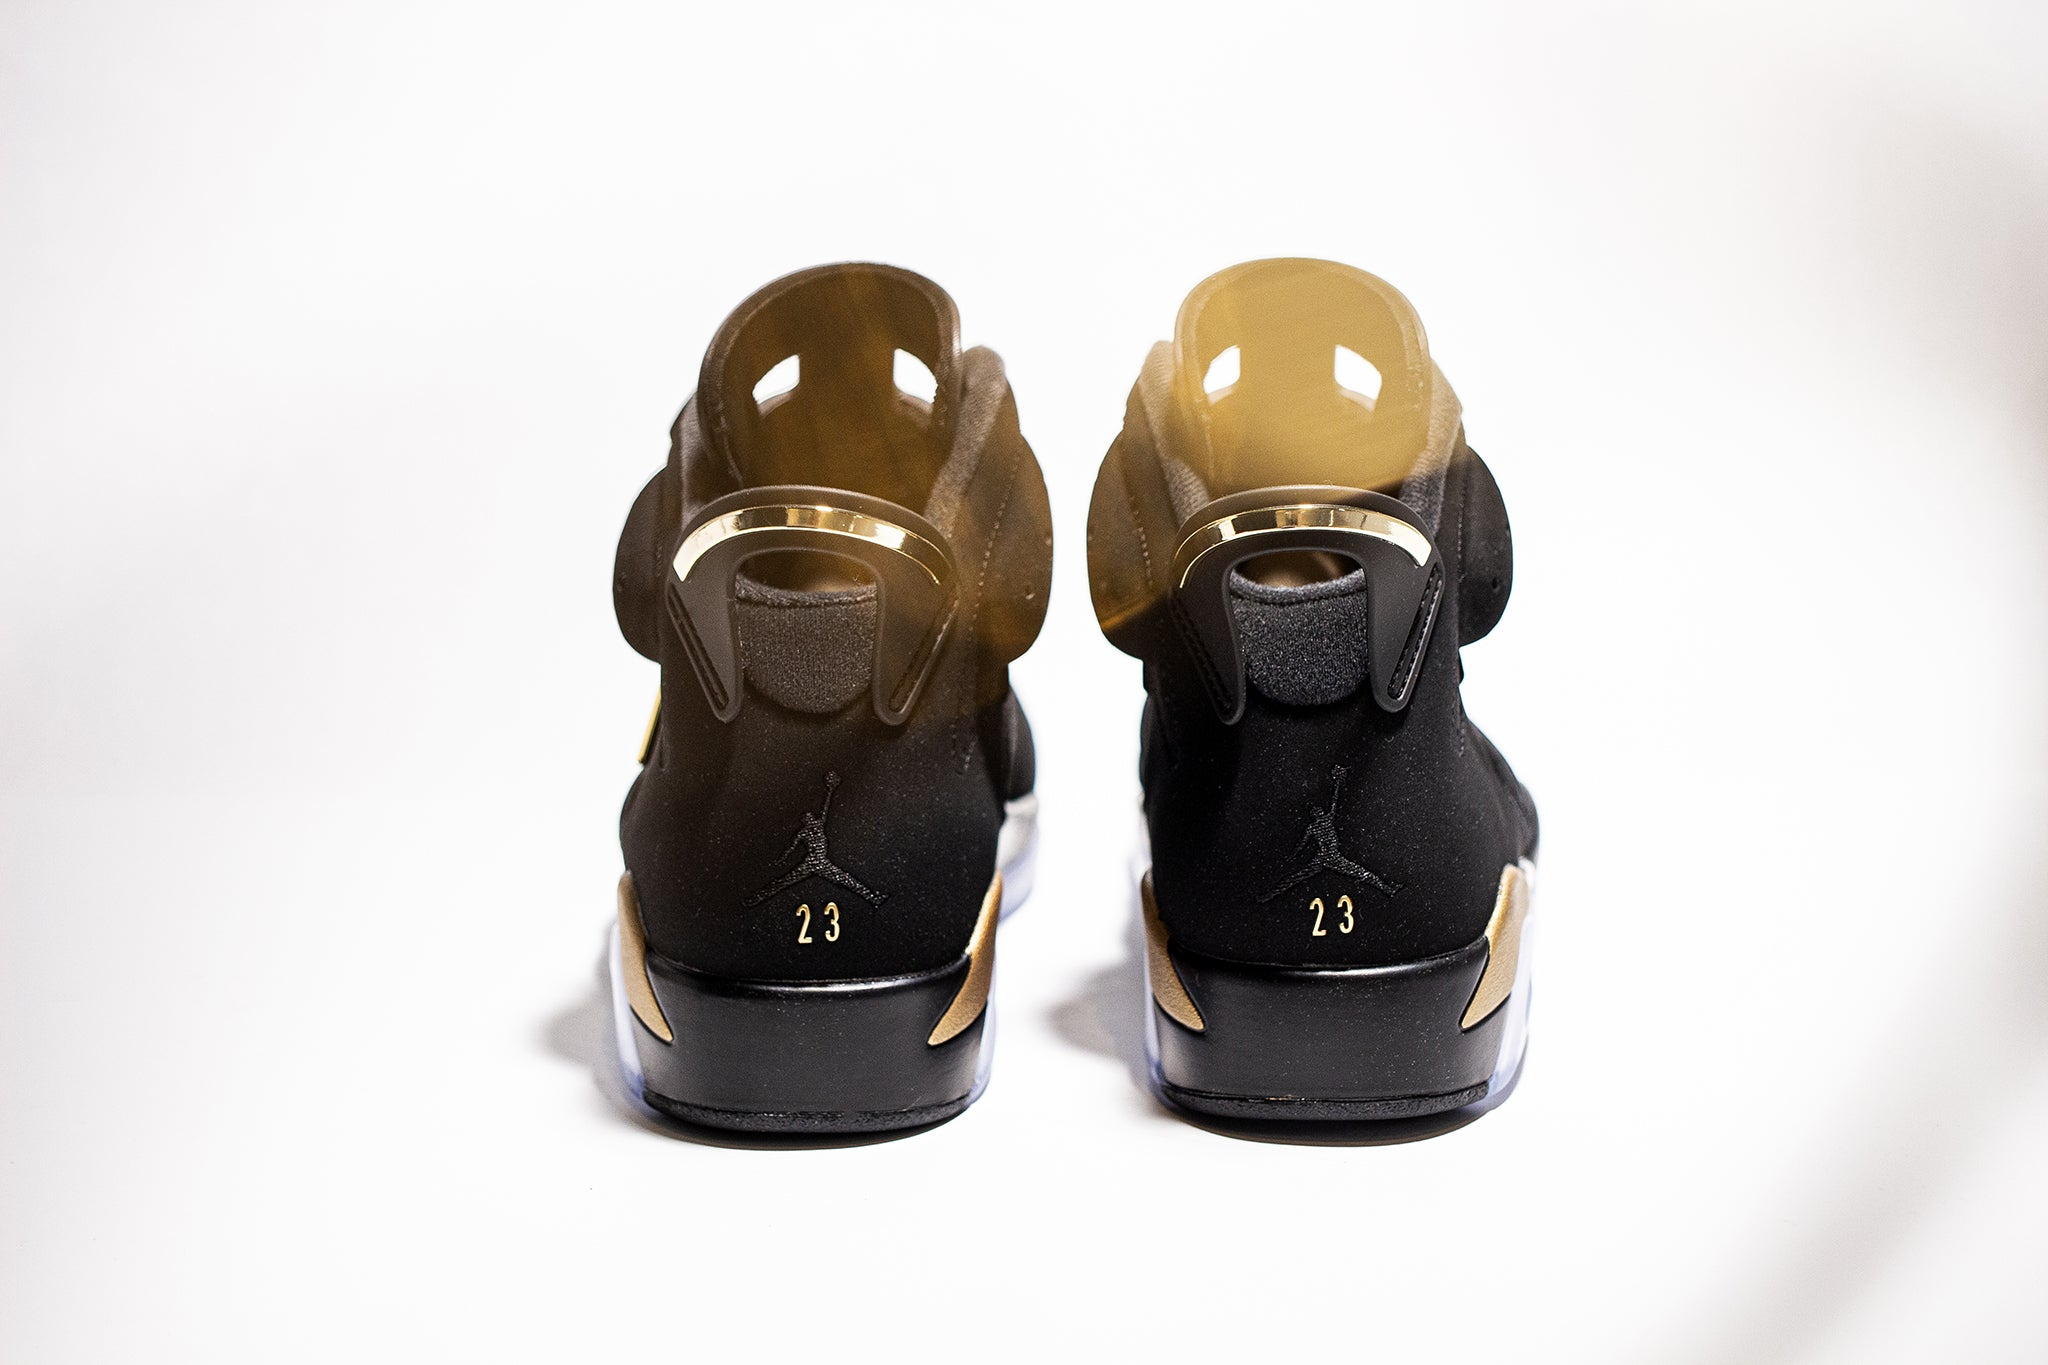 Reverse side view of a pair of black gold Jordan 6 sneakers